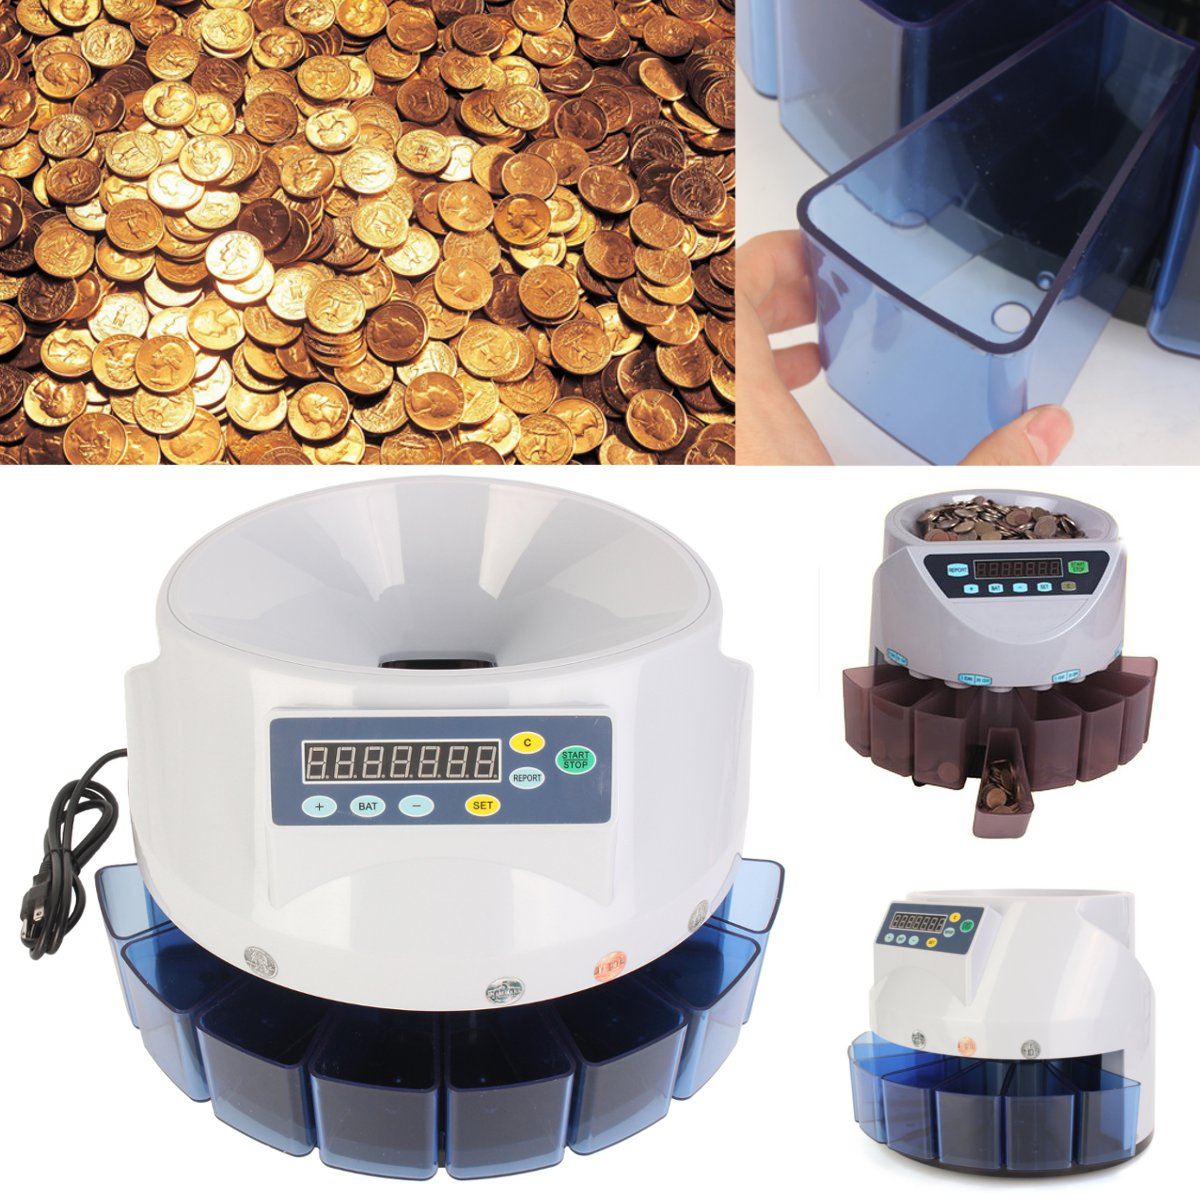 Meigar Commercial Automatic Electronic Digital US Coin Sorter Change Counter Fast Sort